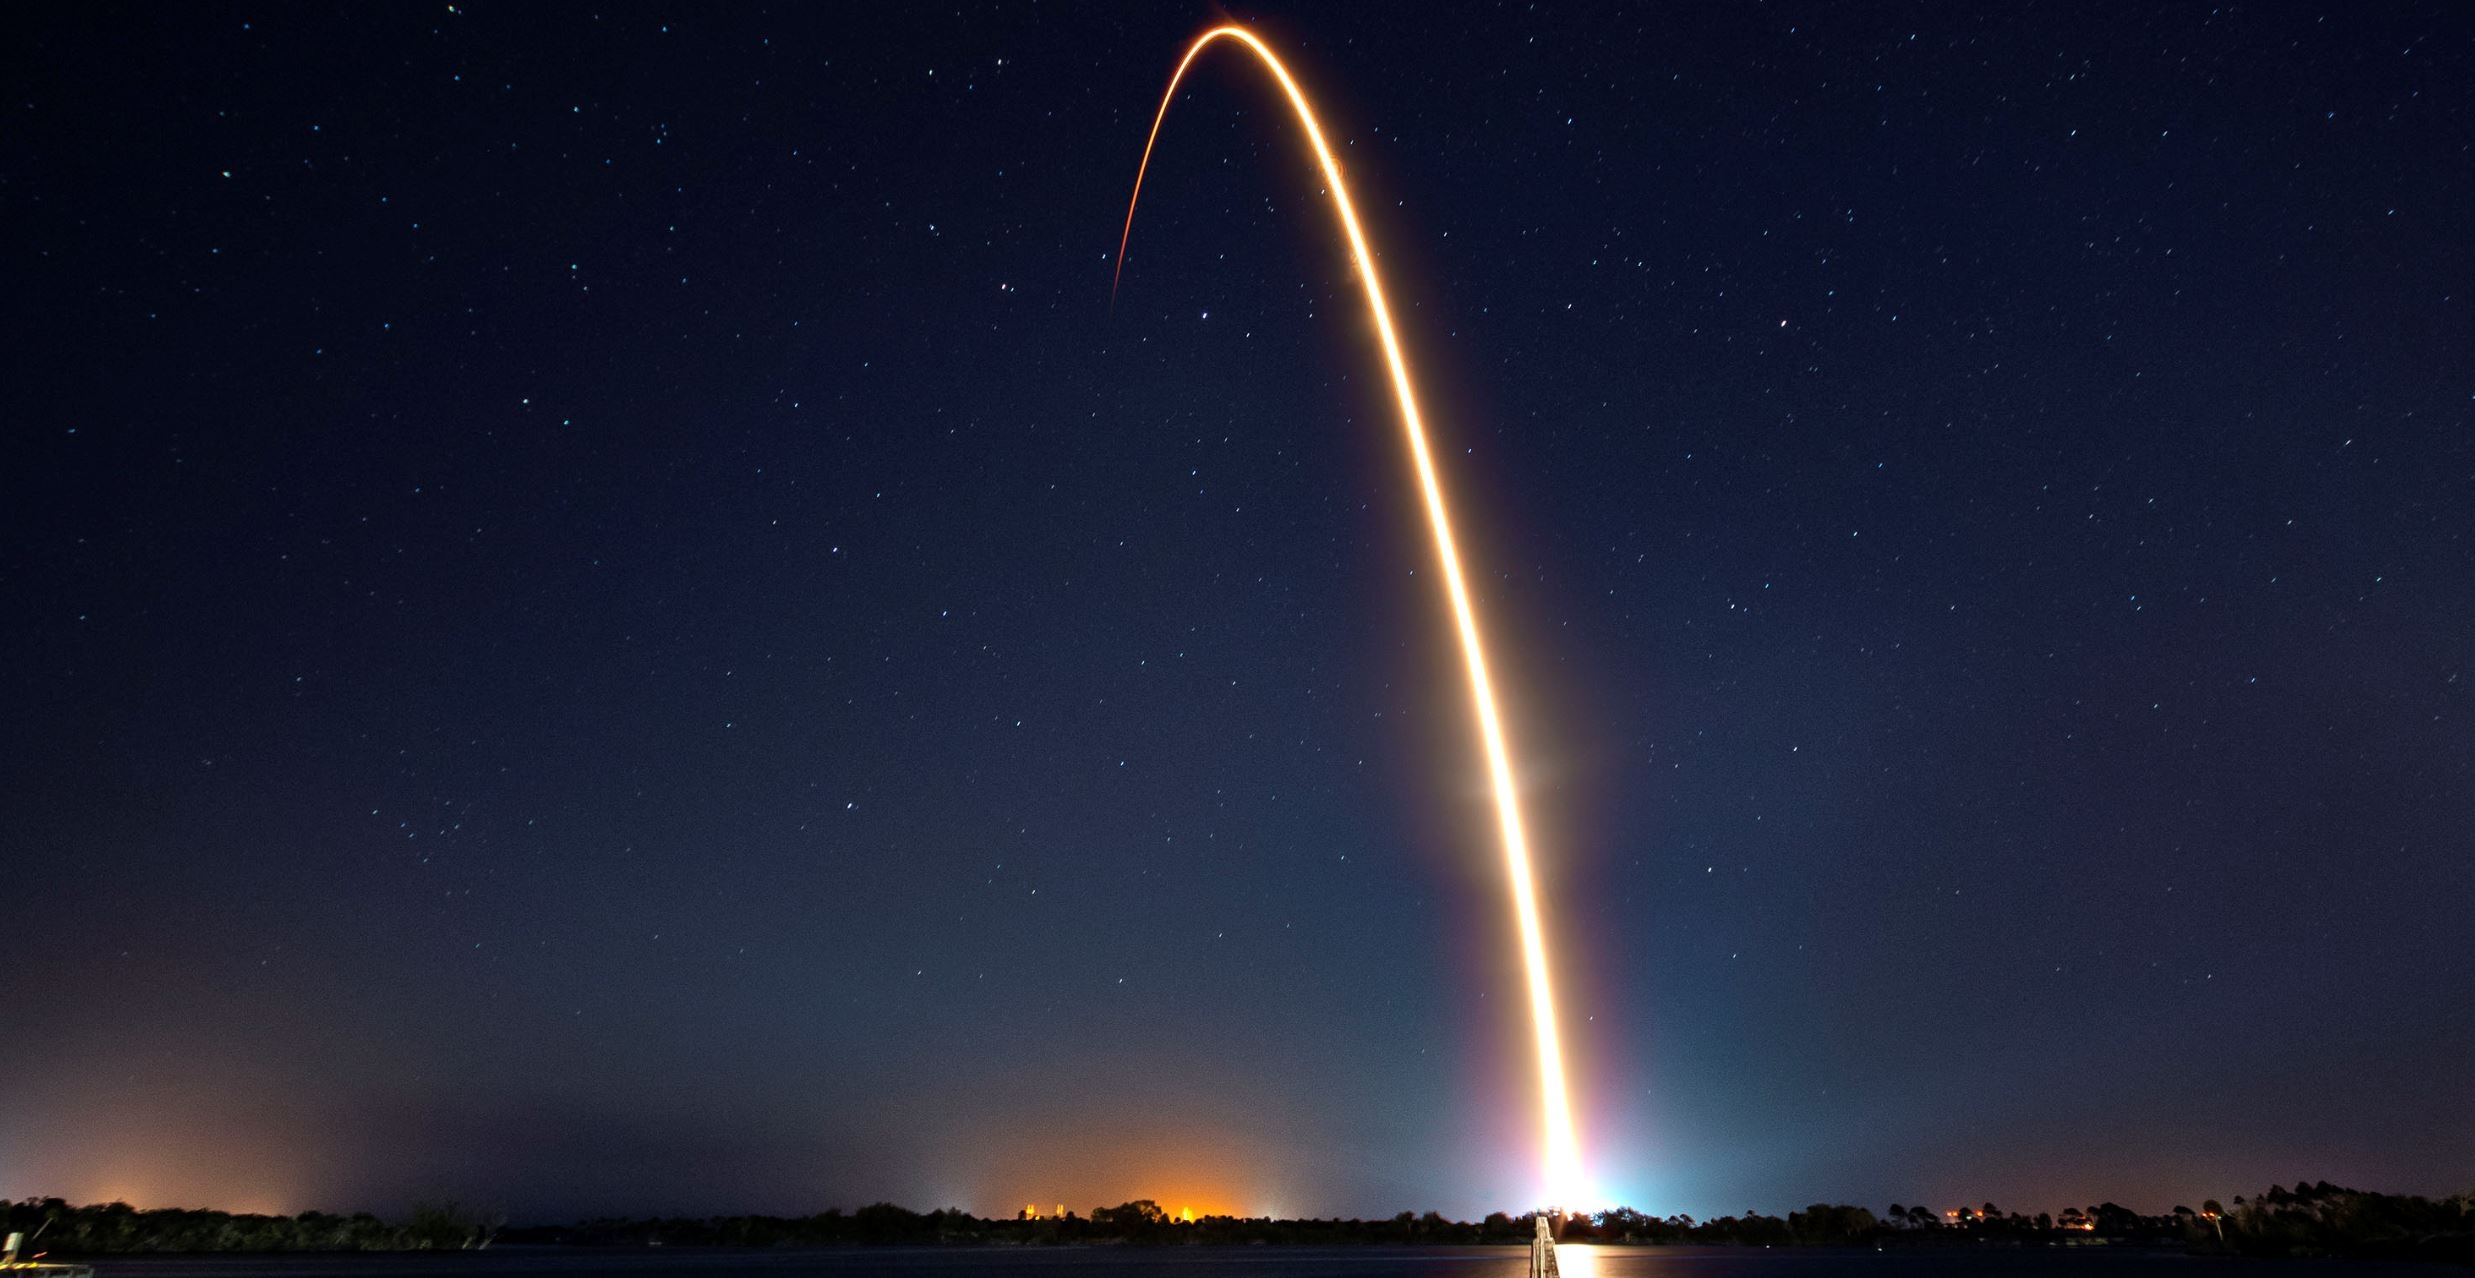 Launch of a satellite - Image Credit:  SpaceX via flickr